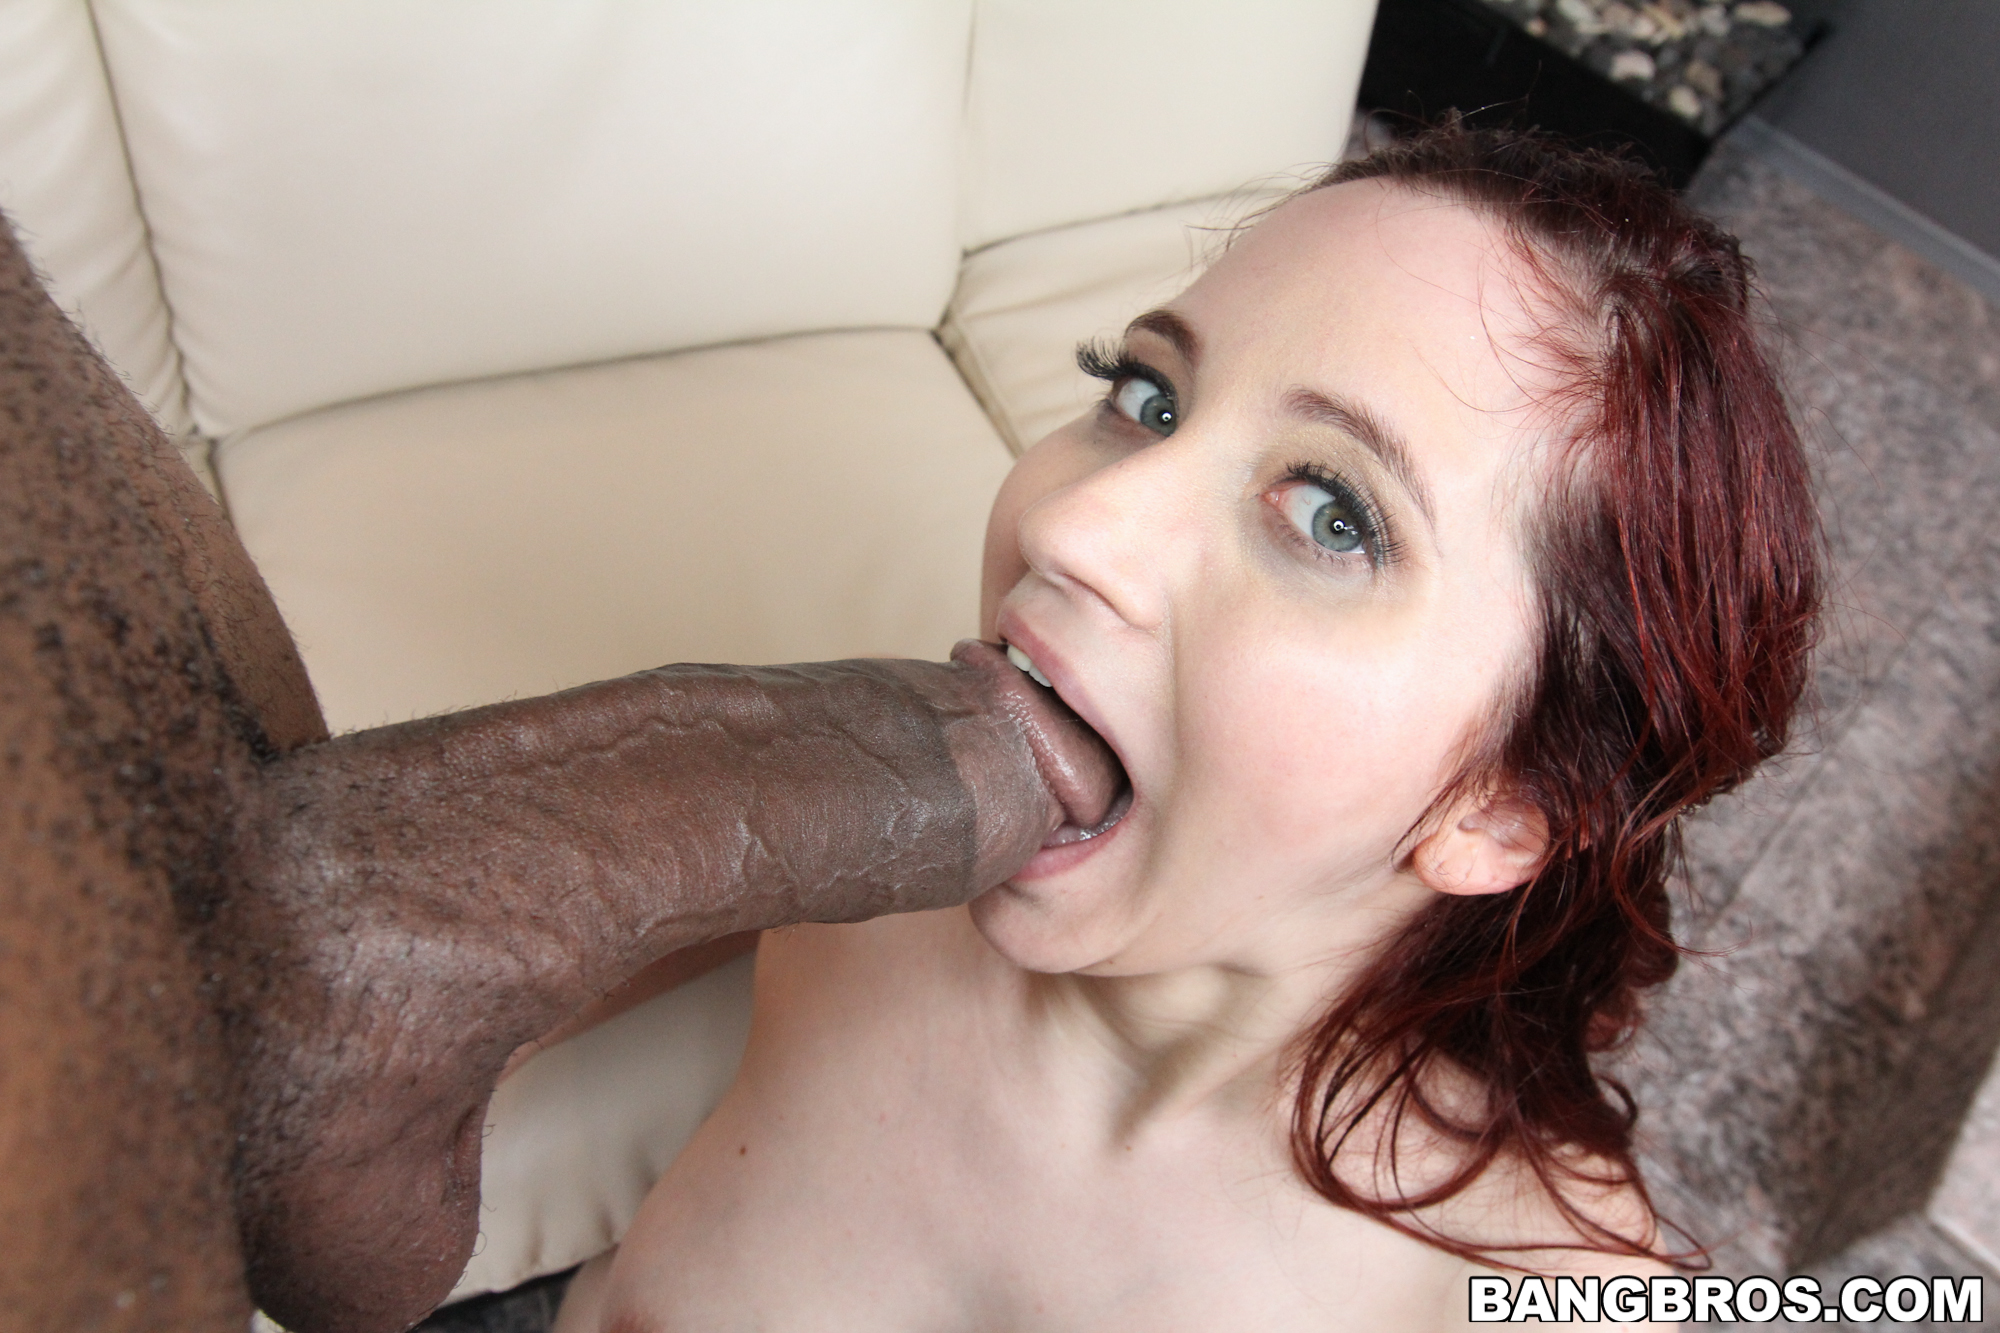 Young redhead sucks many cocks speaking, would